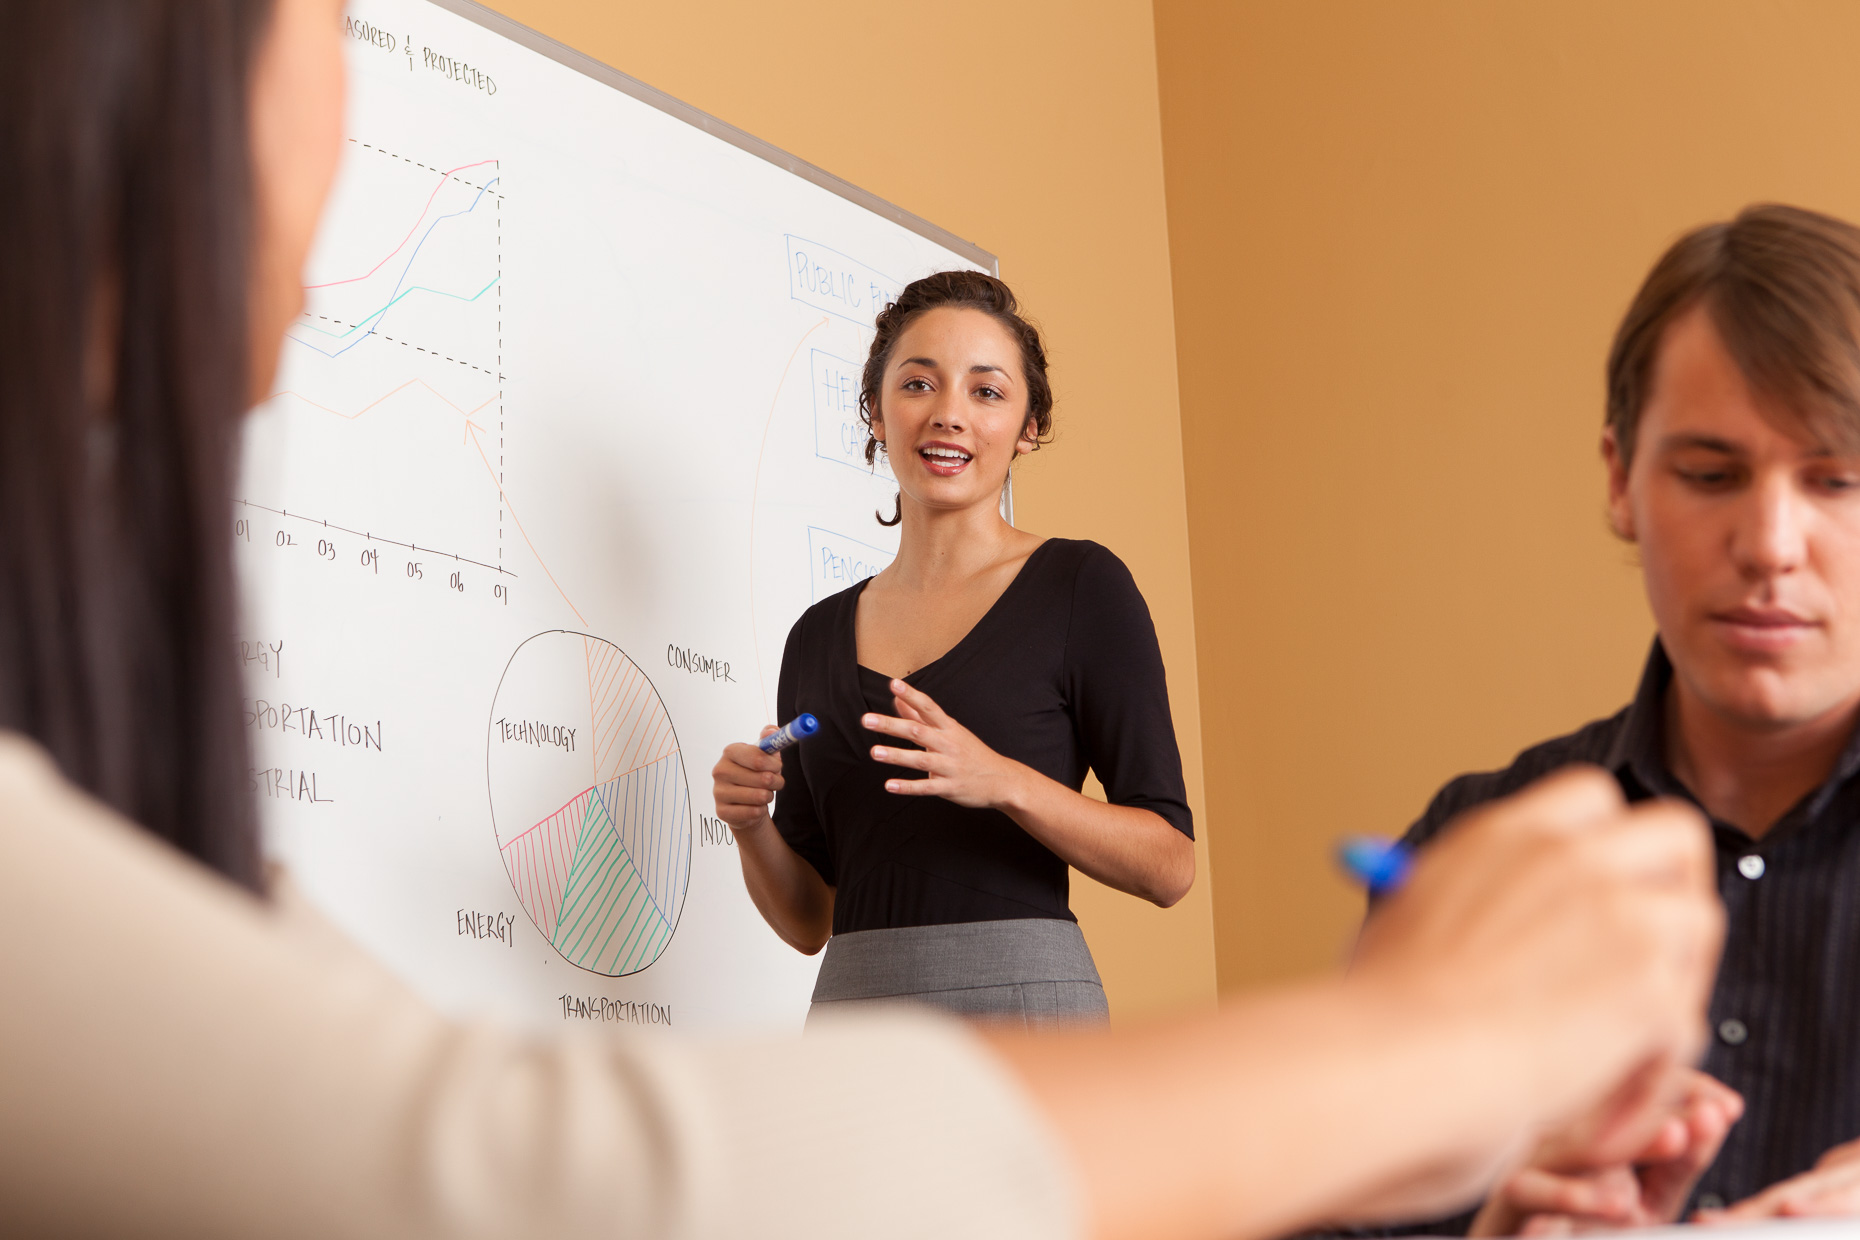 Woman standing next to white board during office meeting in conference room. Corporate. David Zaitz Photography.